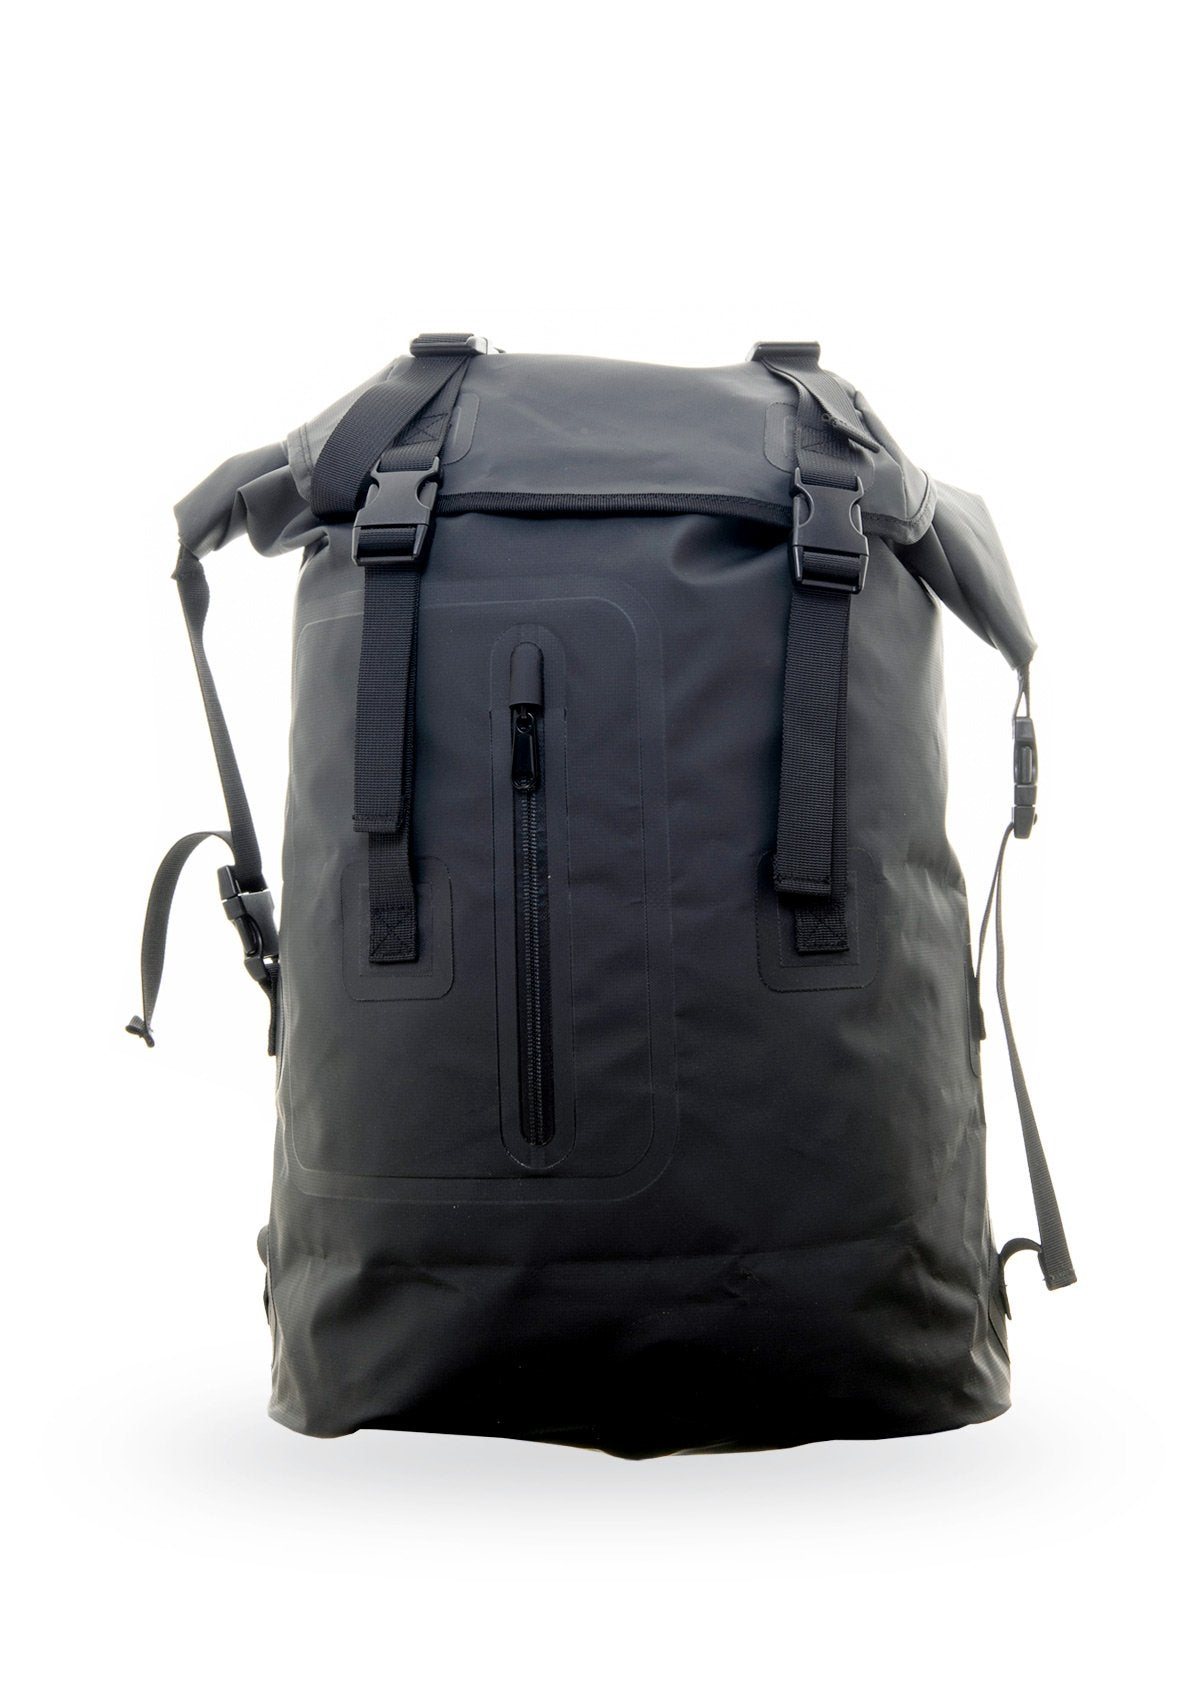 needessentials dry bag surfing black non branded